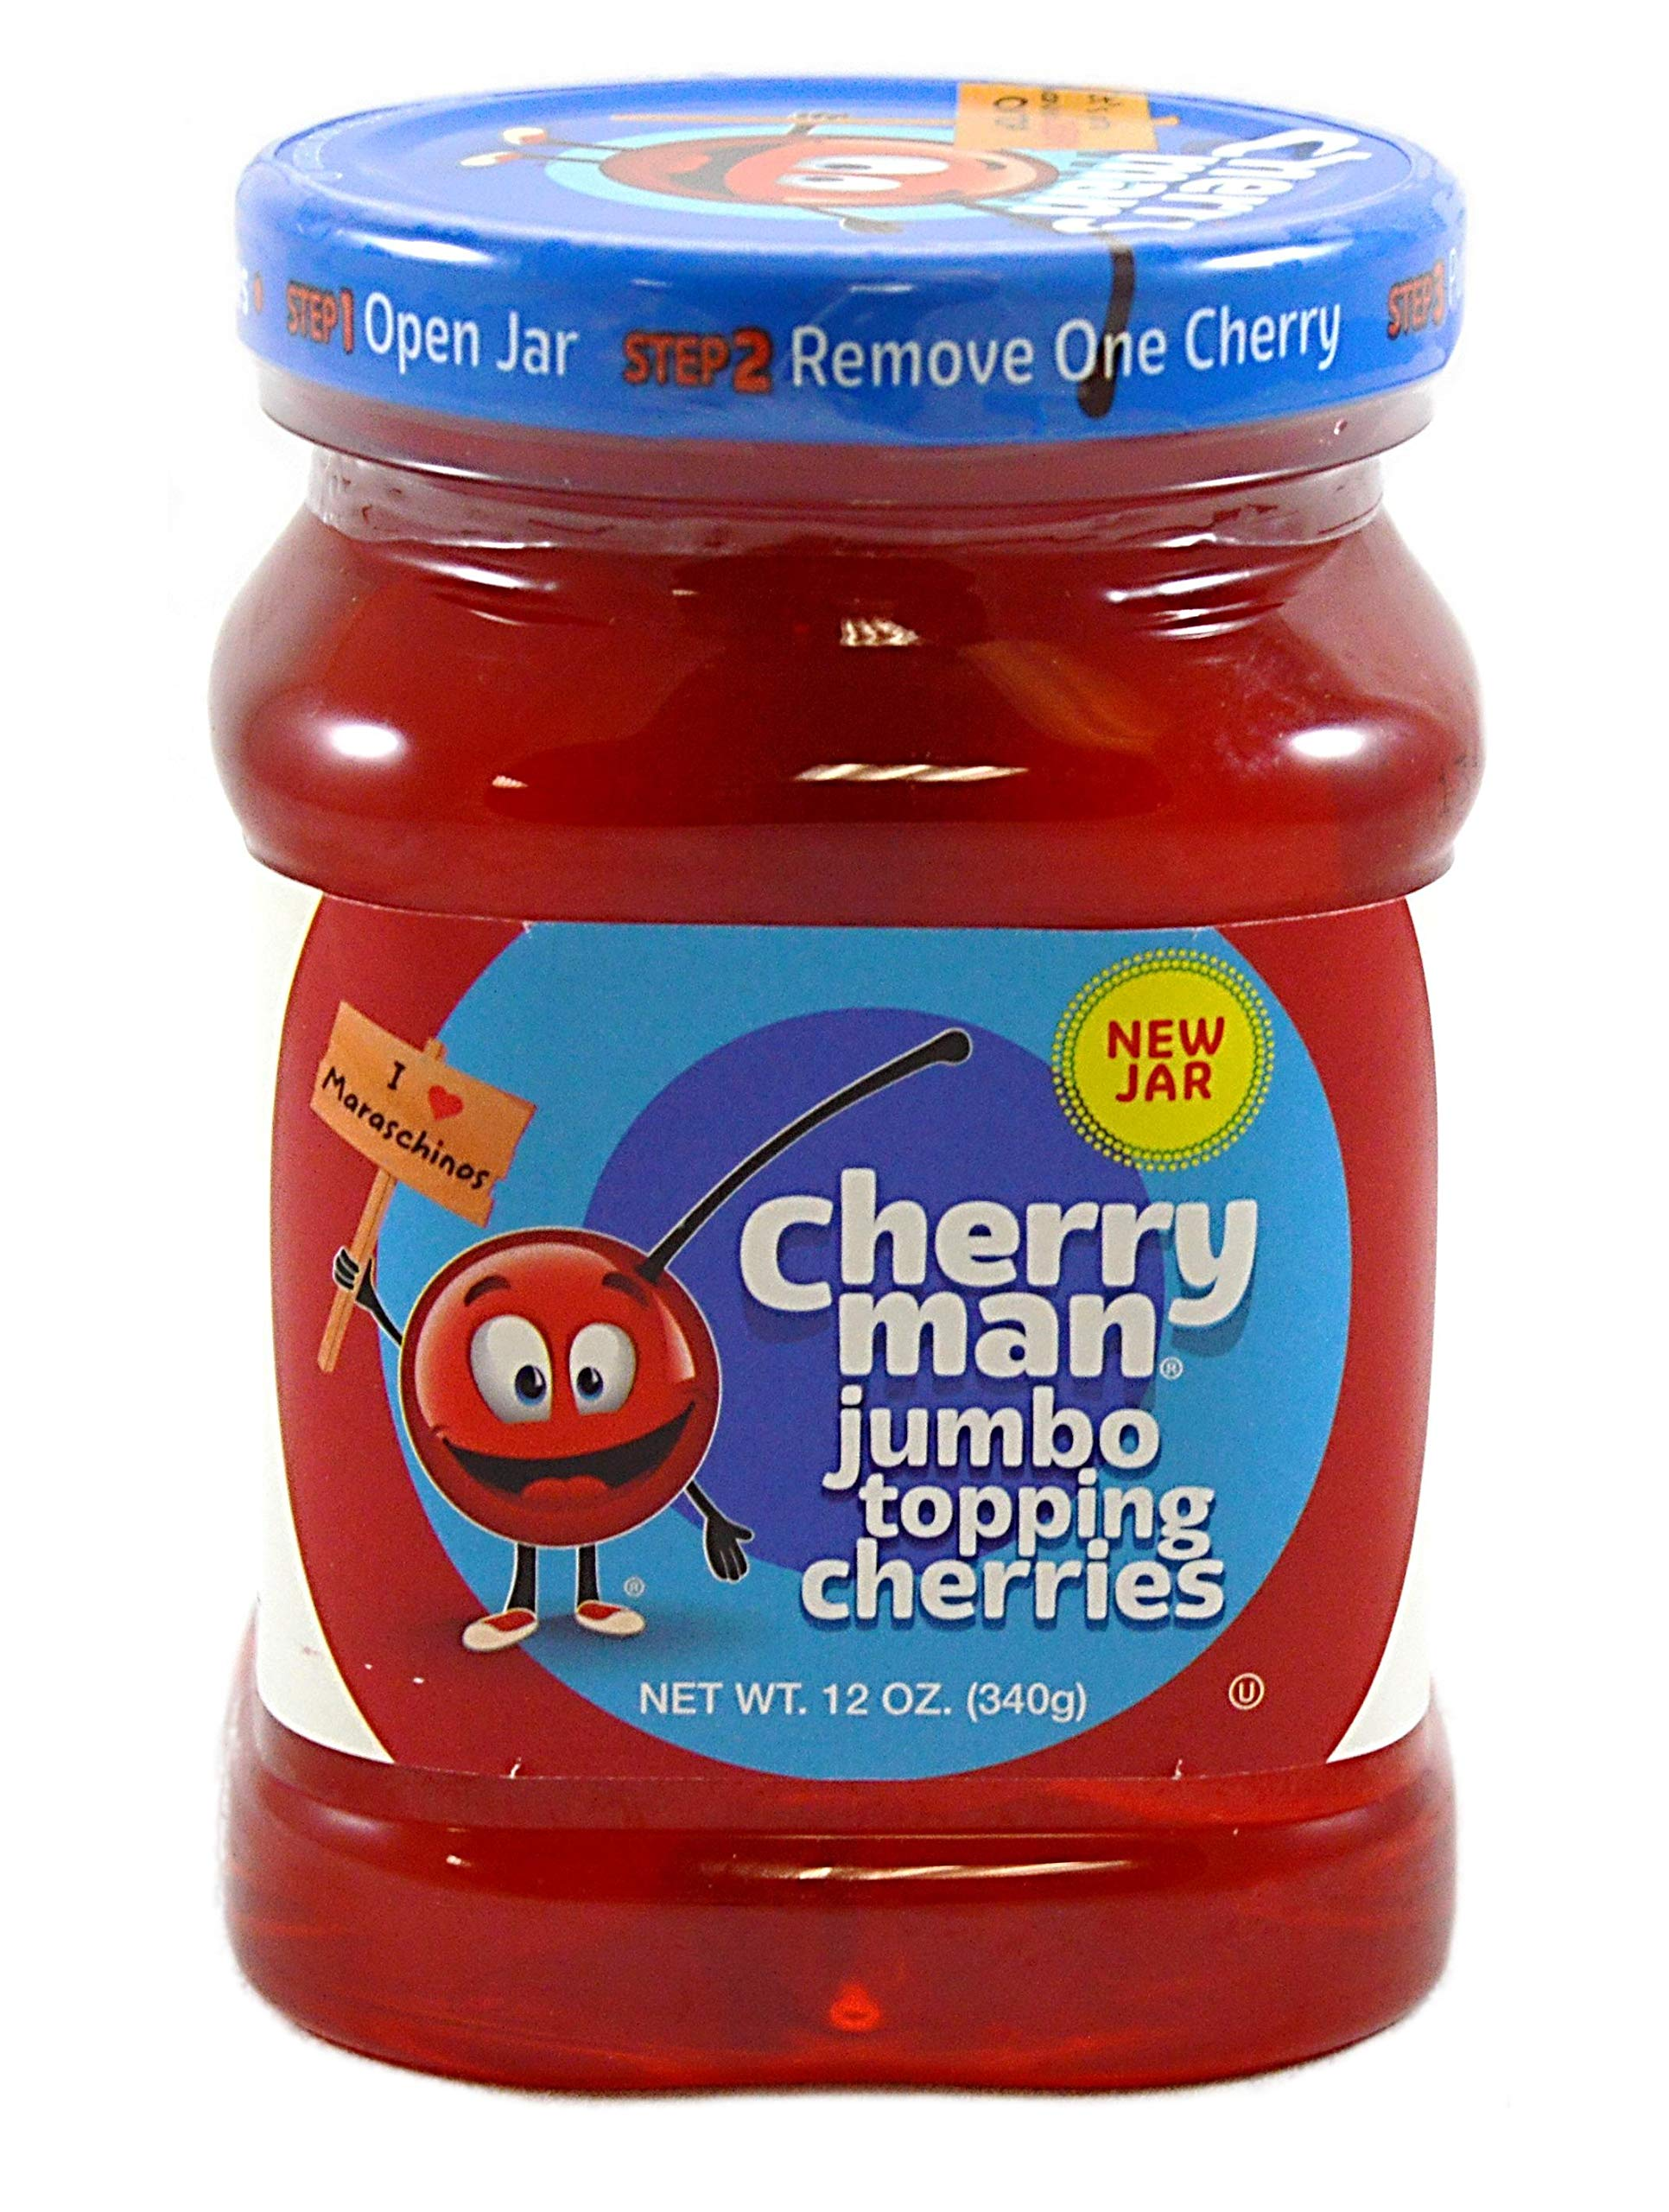 CherryMan Jumbo Topping Cherries No Stems, 12 Ounce (Pack of 12) by CherryMan (Image #1)